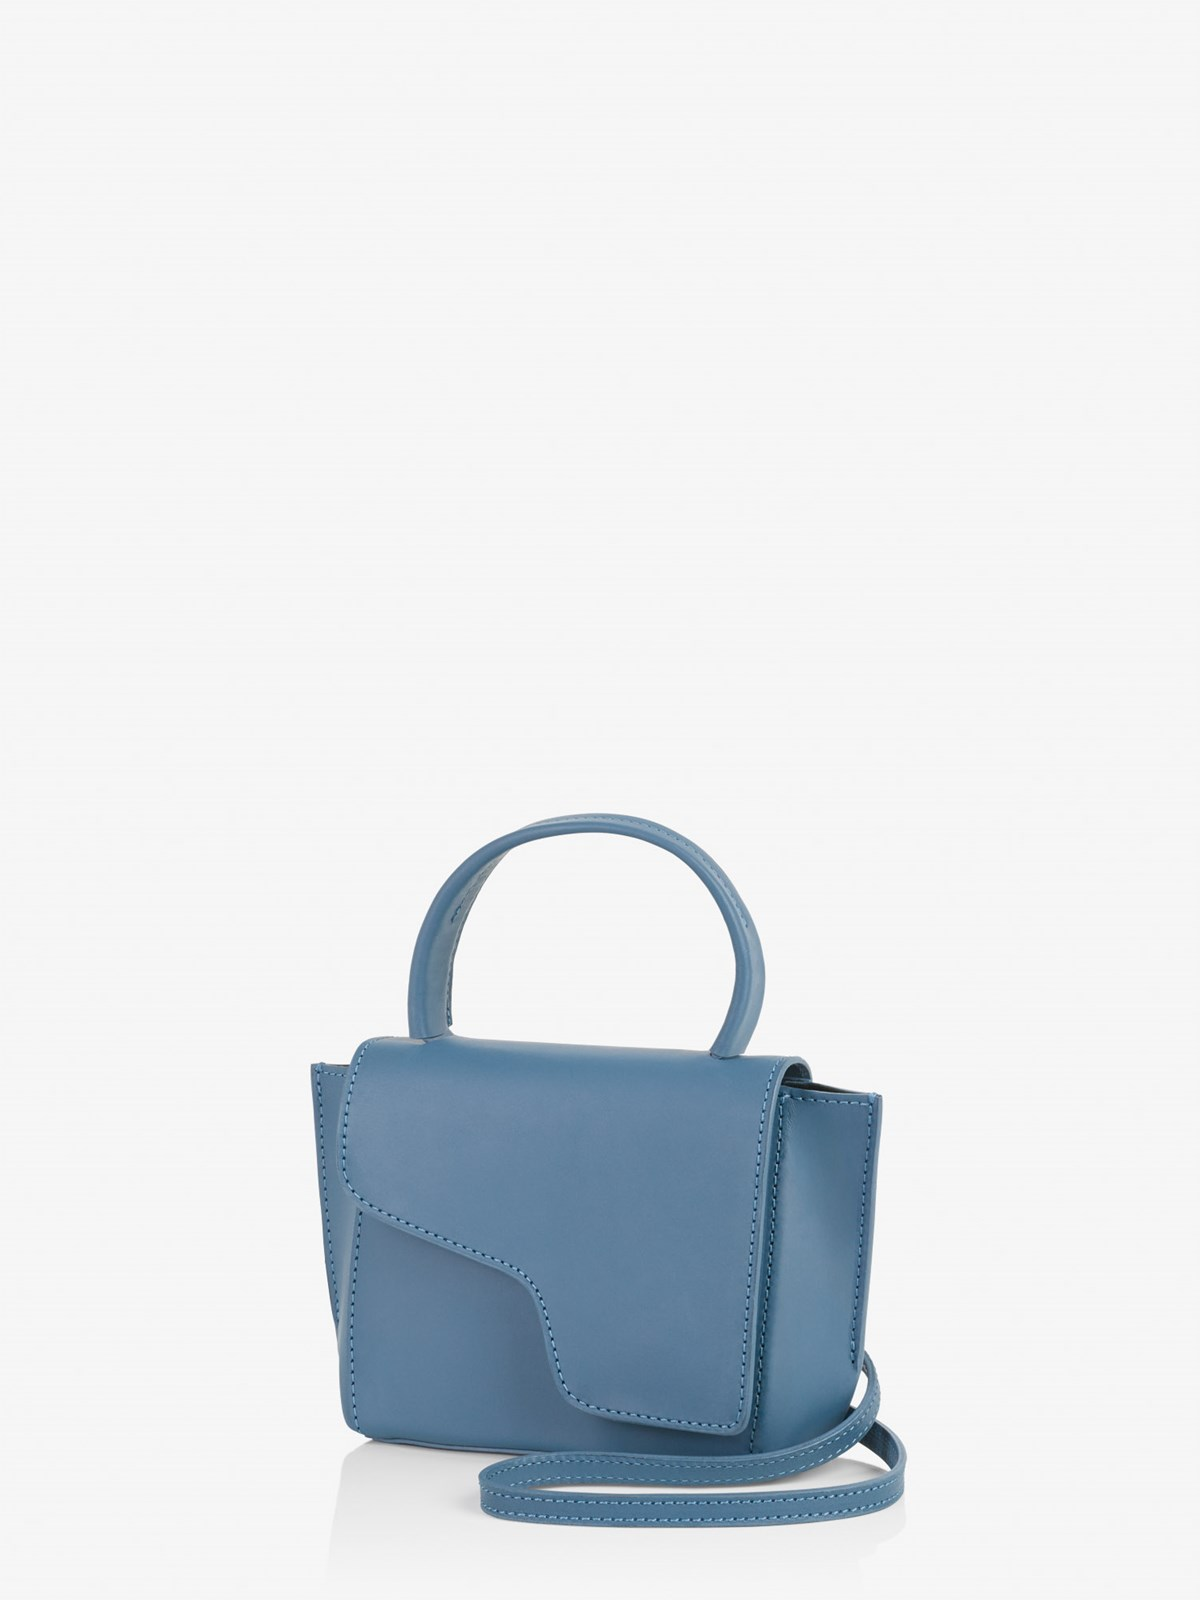 Montalcino Sky Blue Mini handbag